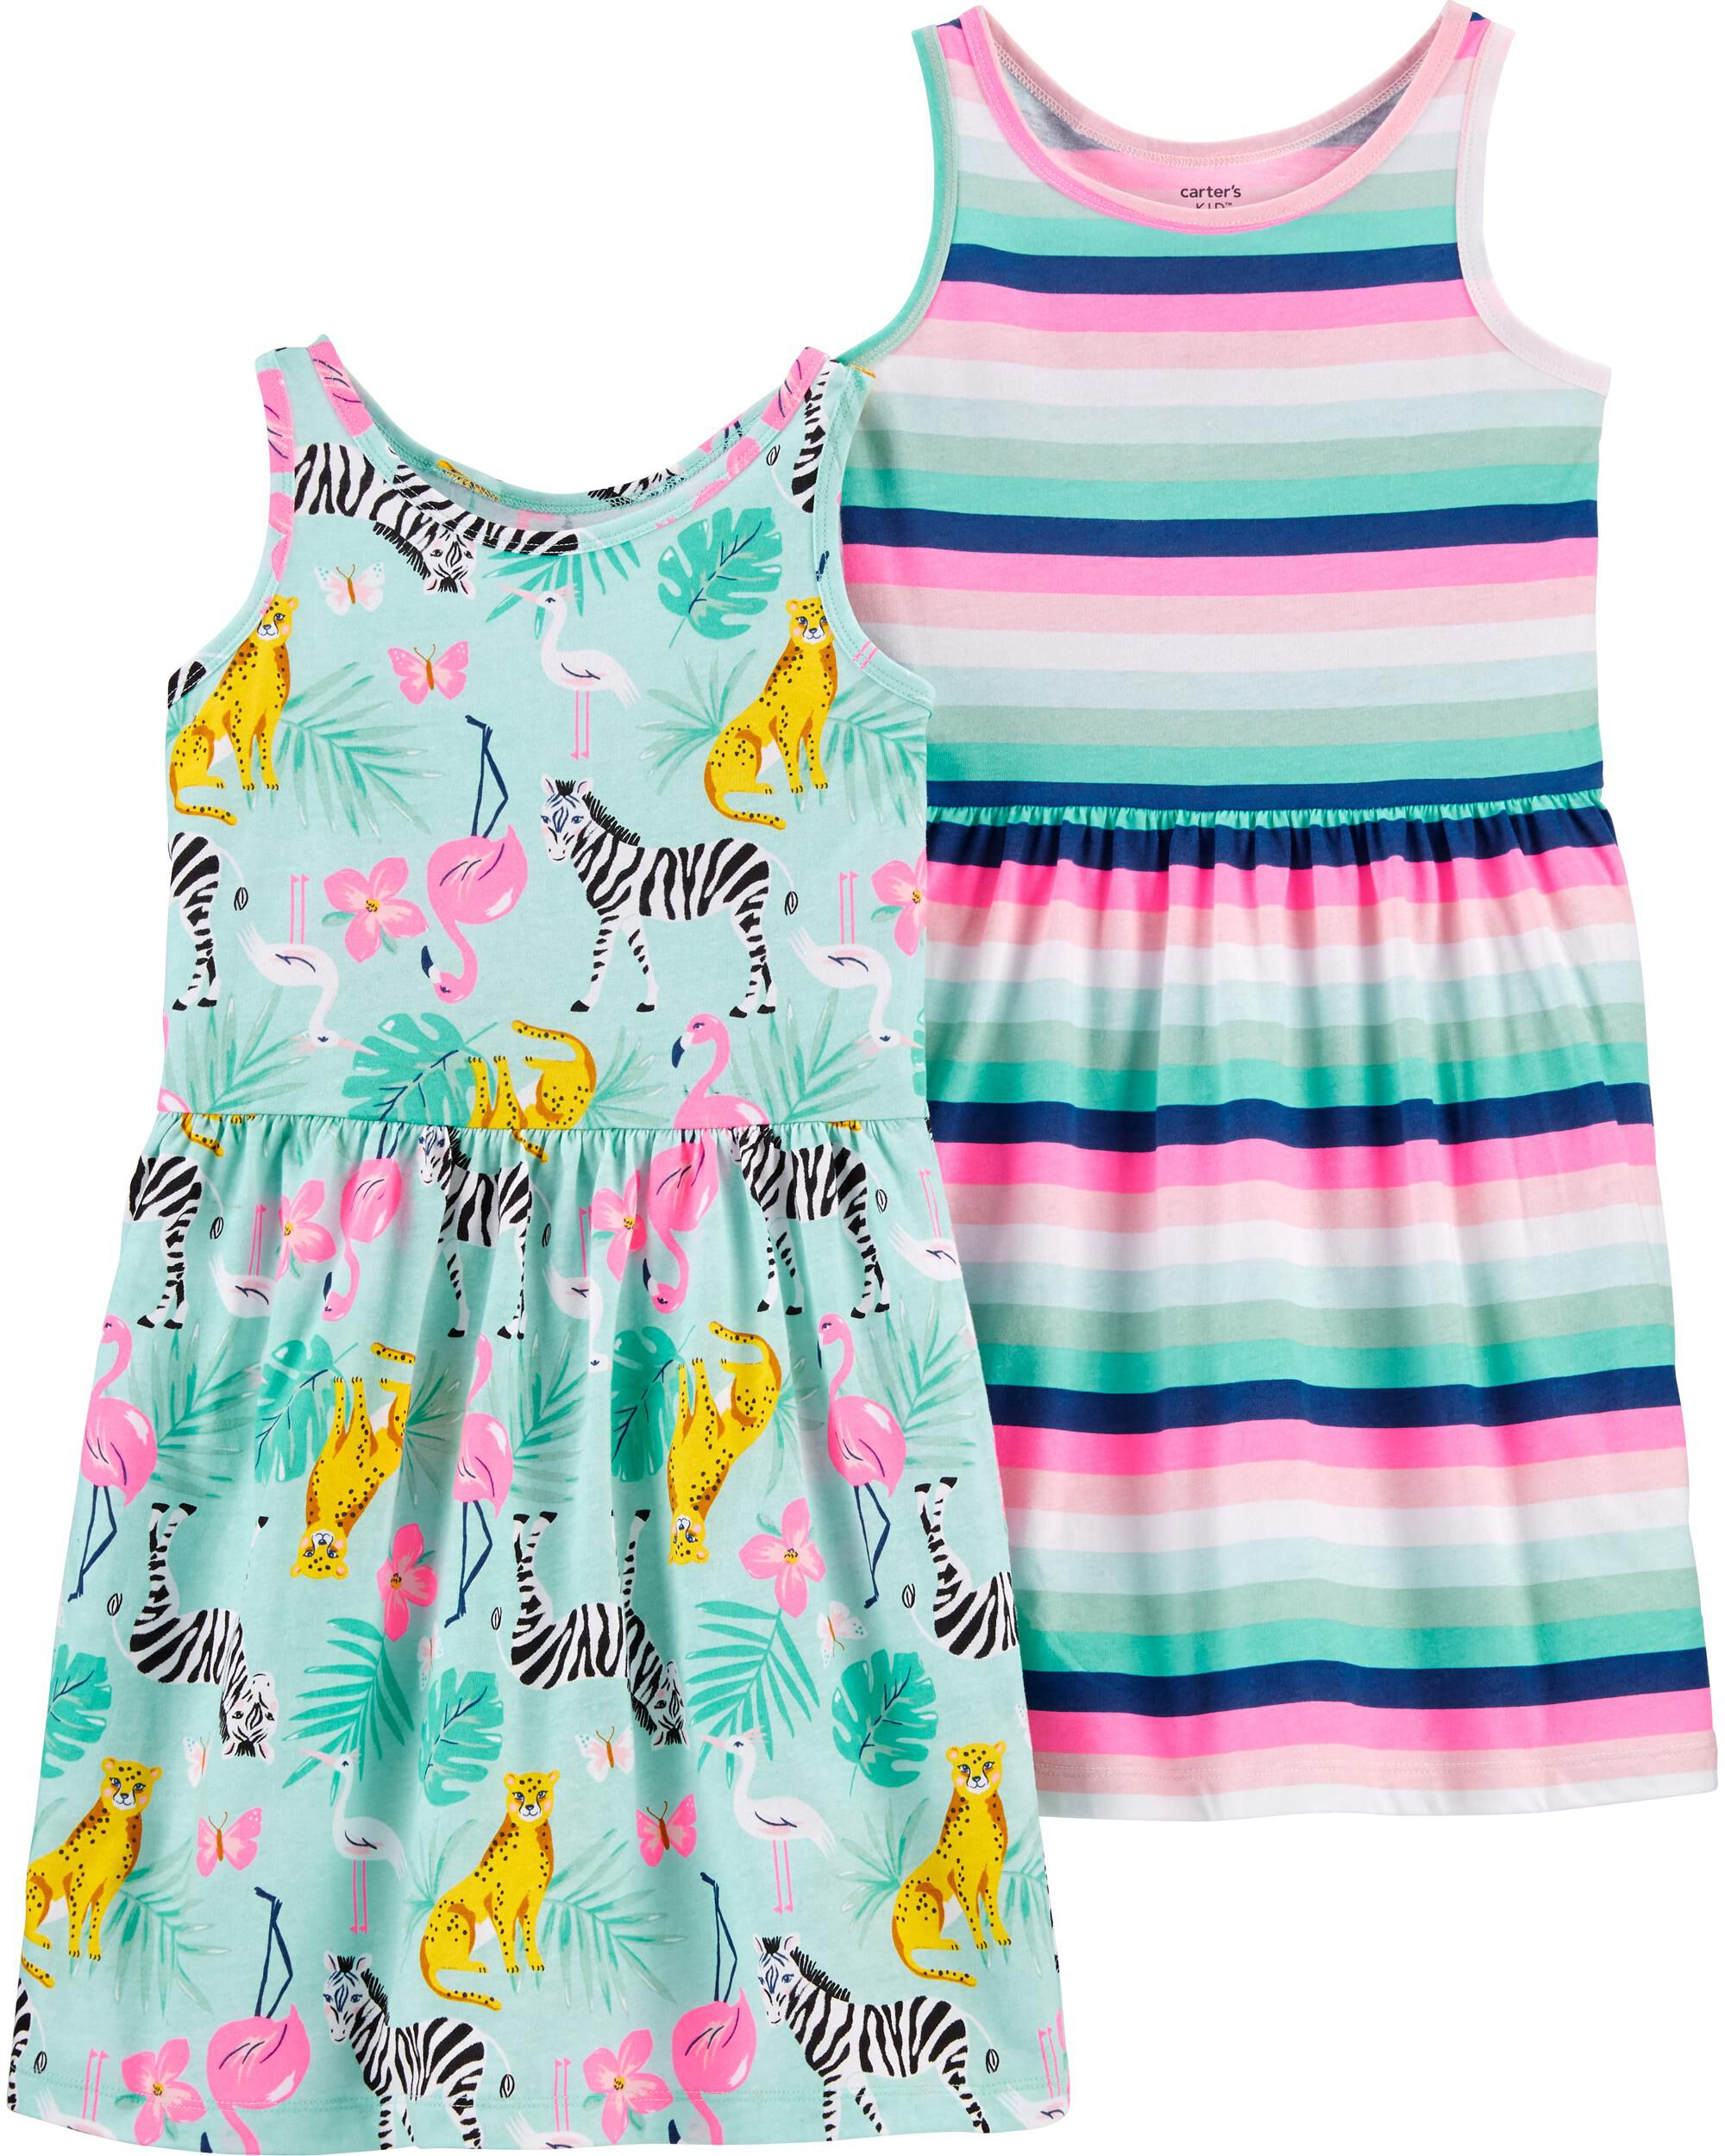 Girls Dress Carters Smocked Summer Strappy Sleeveless Poplin Floral Size 5 6 NWT